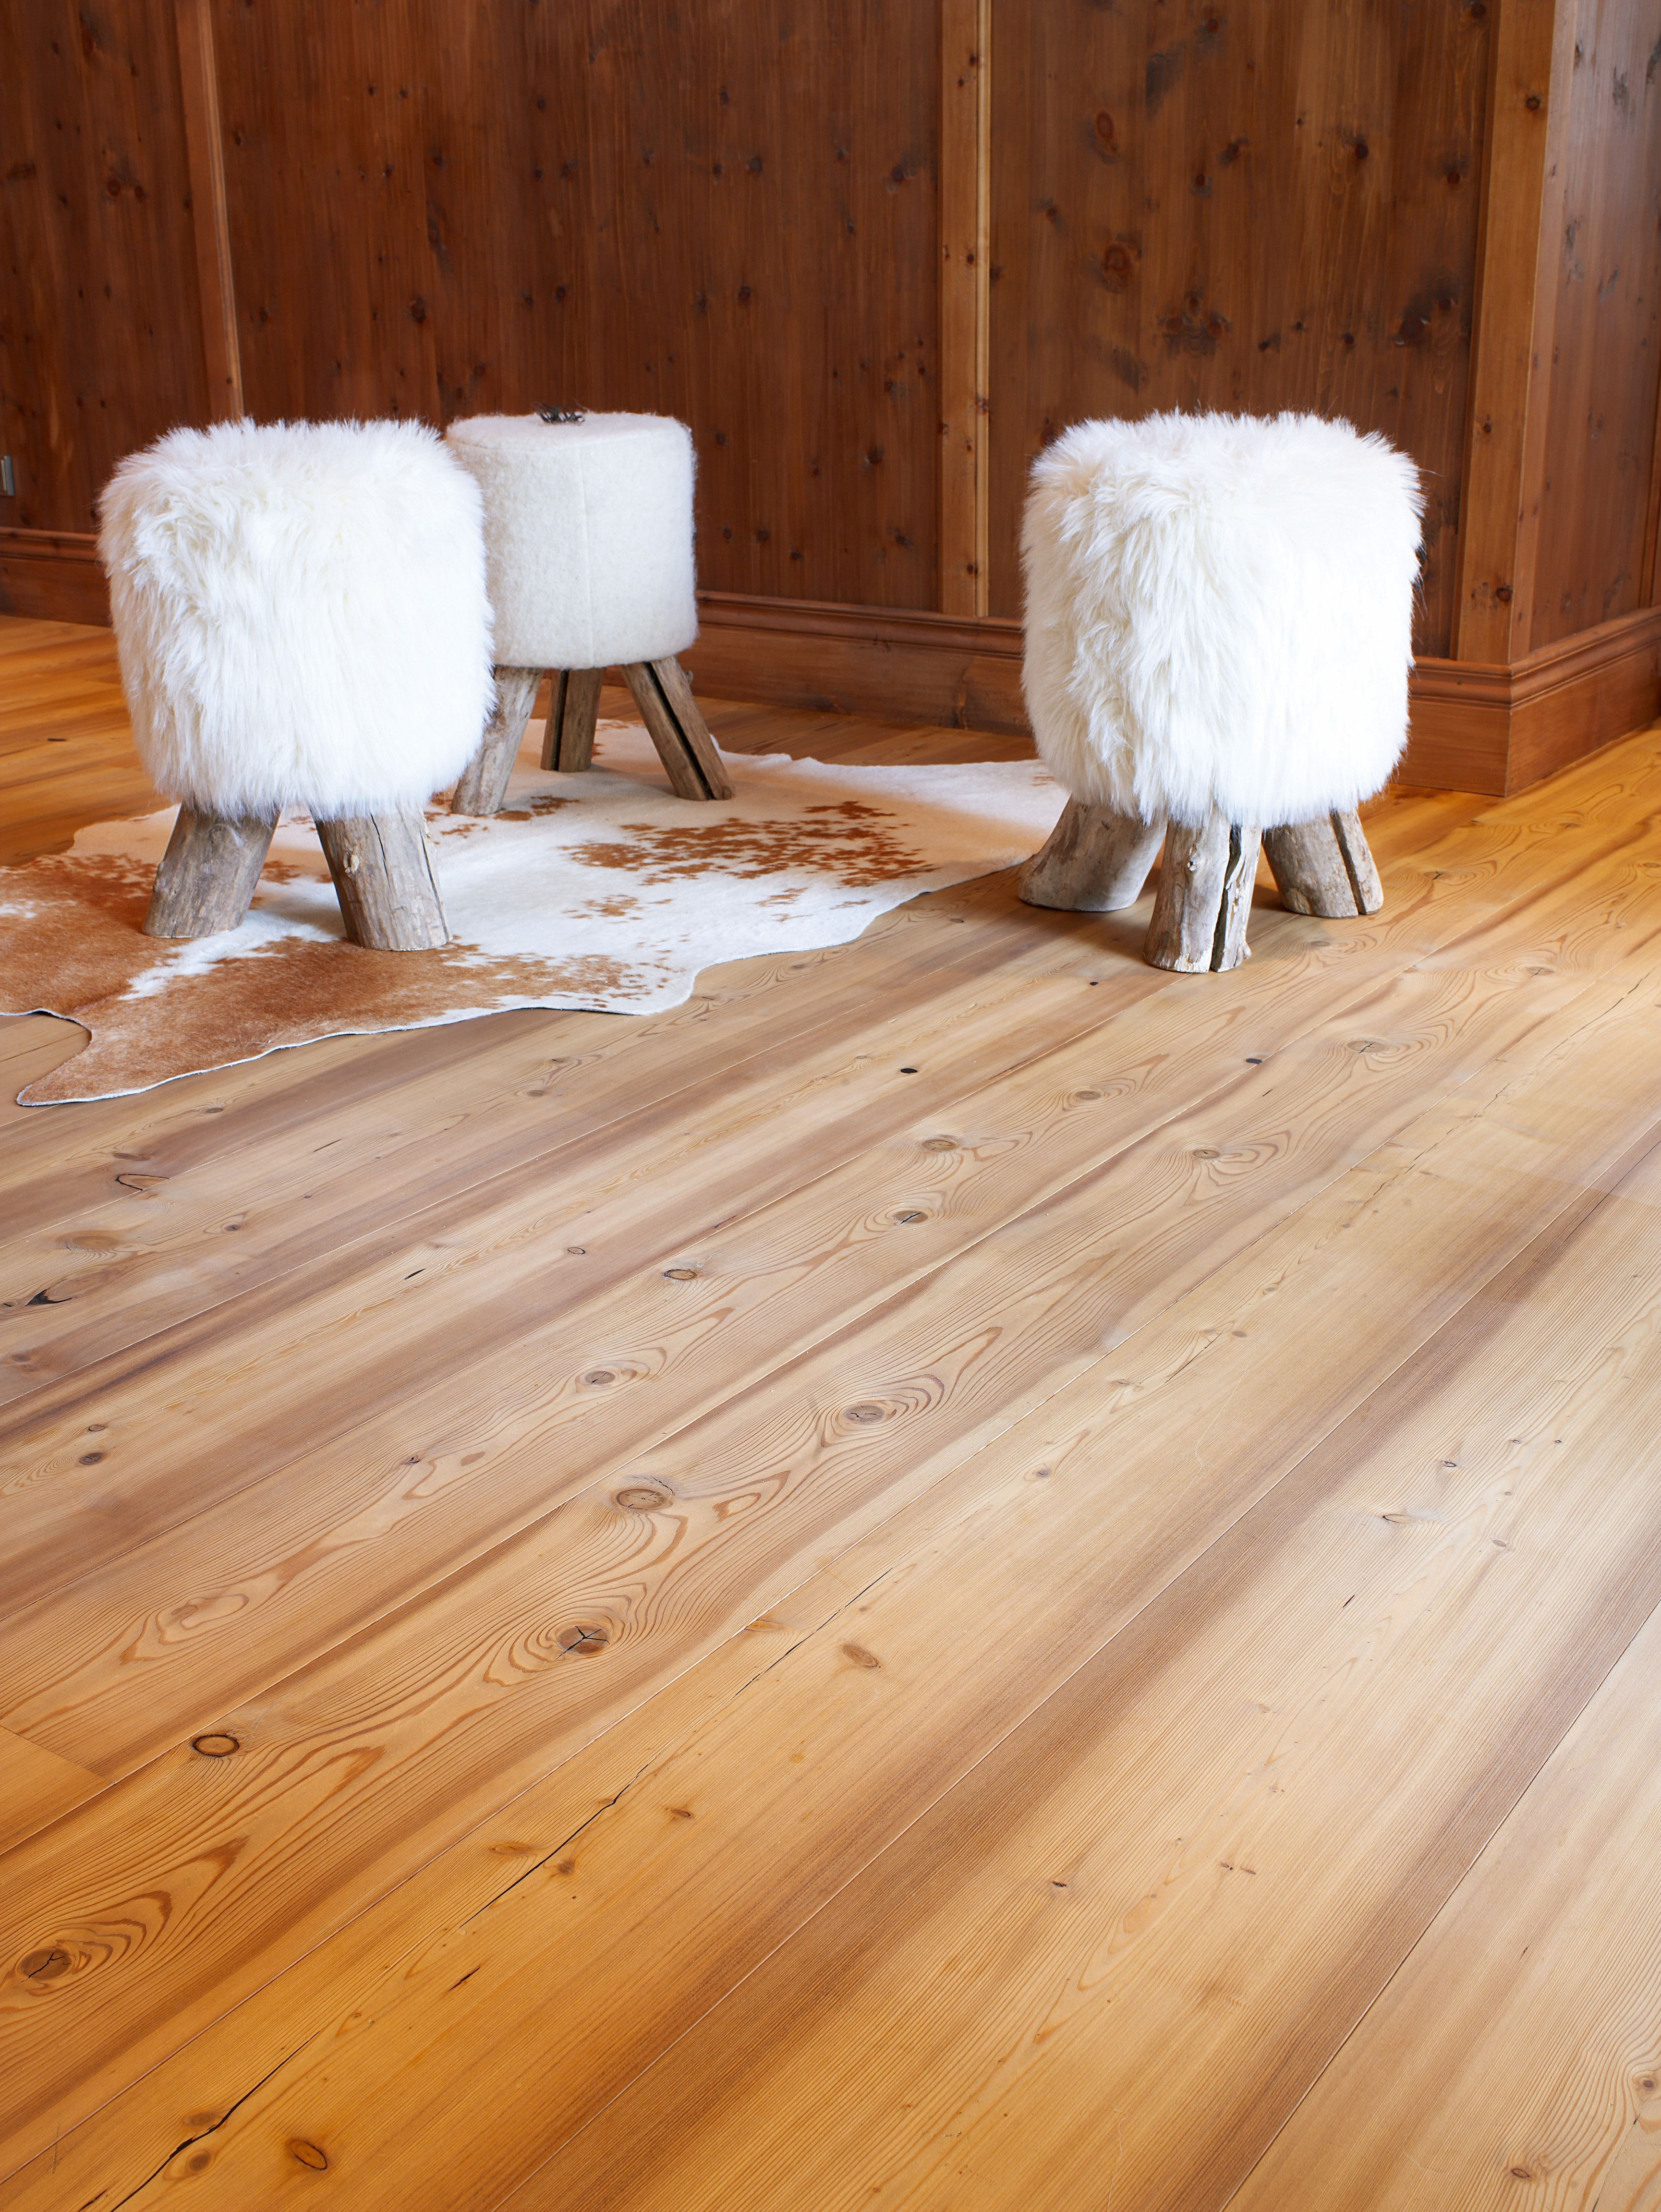 bd hardwood floors of larch country vulcano wide plank brushed natural oil i restaurant in larch country vulcano wide plank brushed natural oil i restaurant hotel i natural wood floors i mafi com